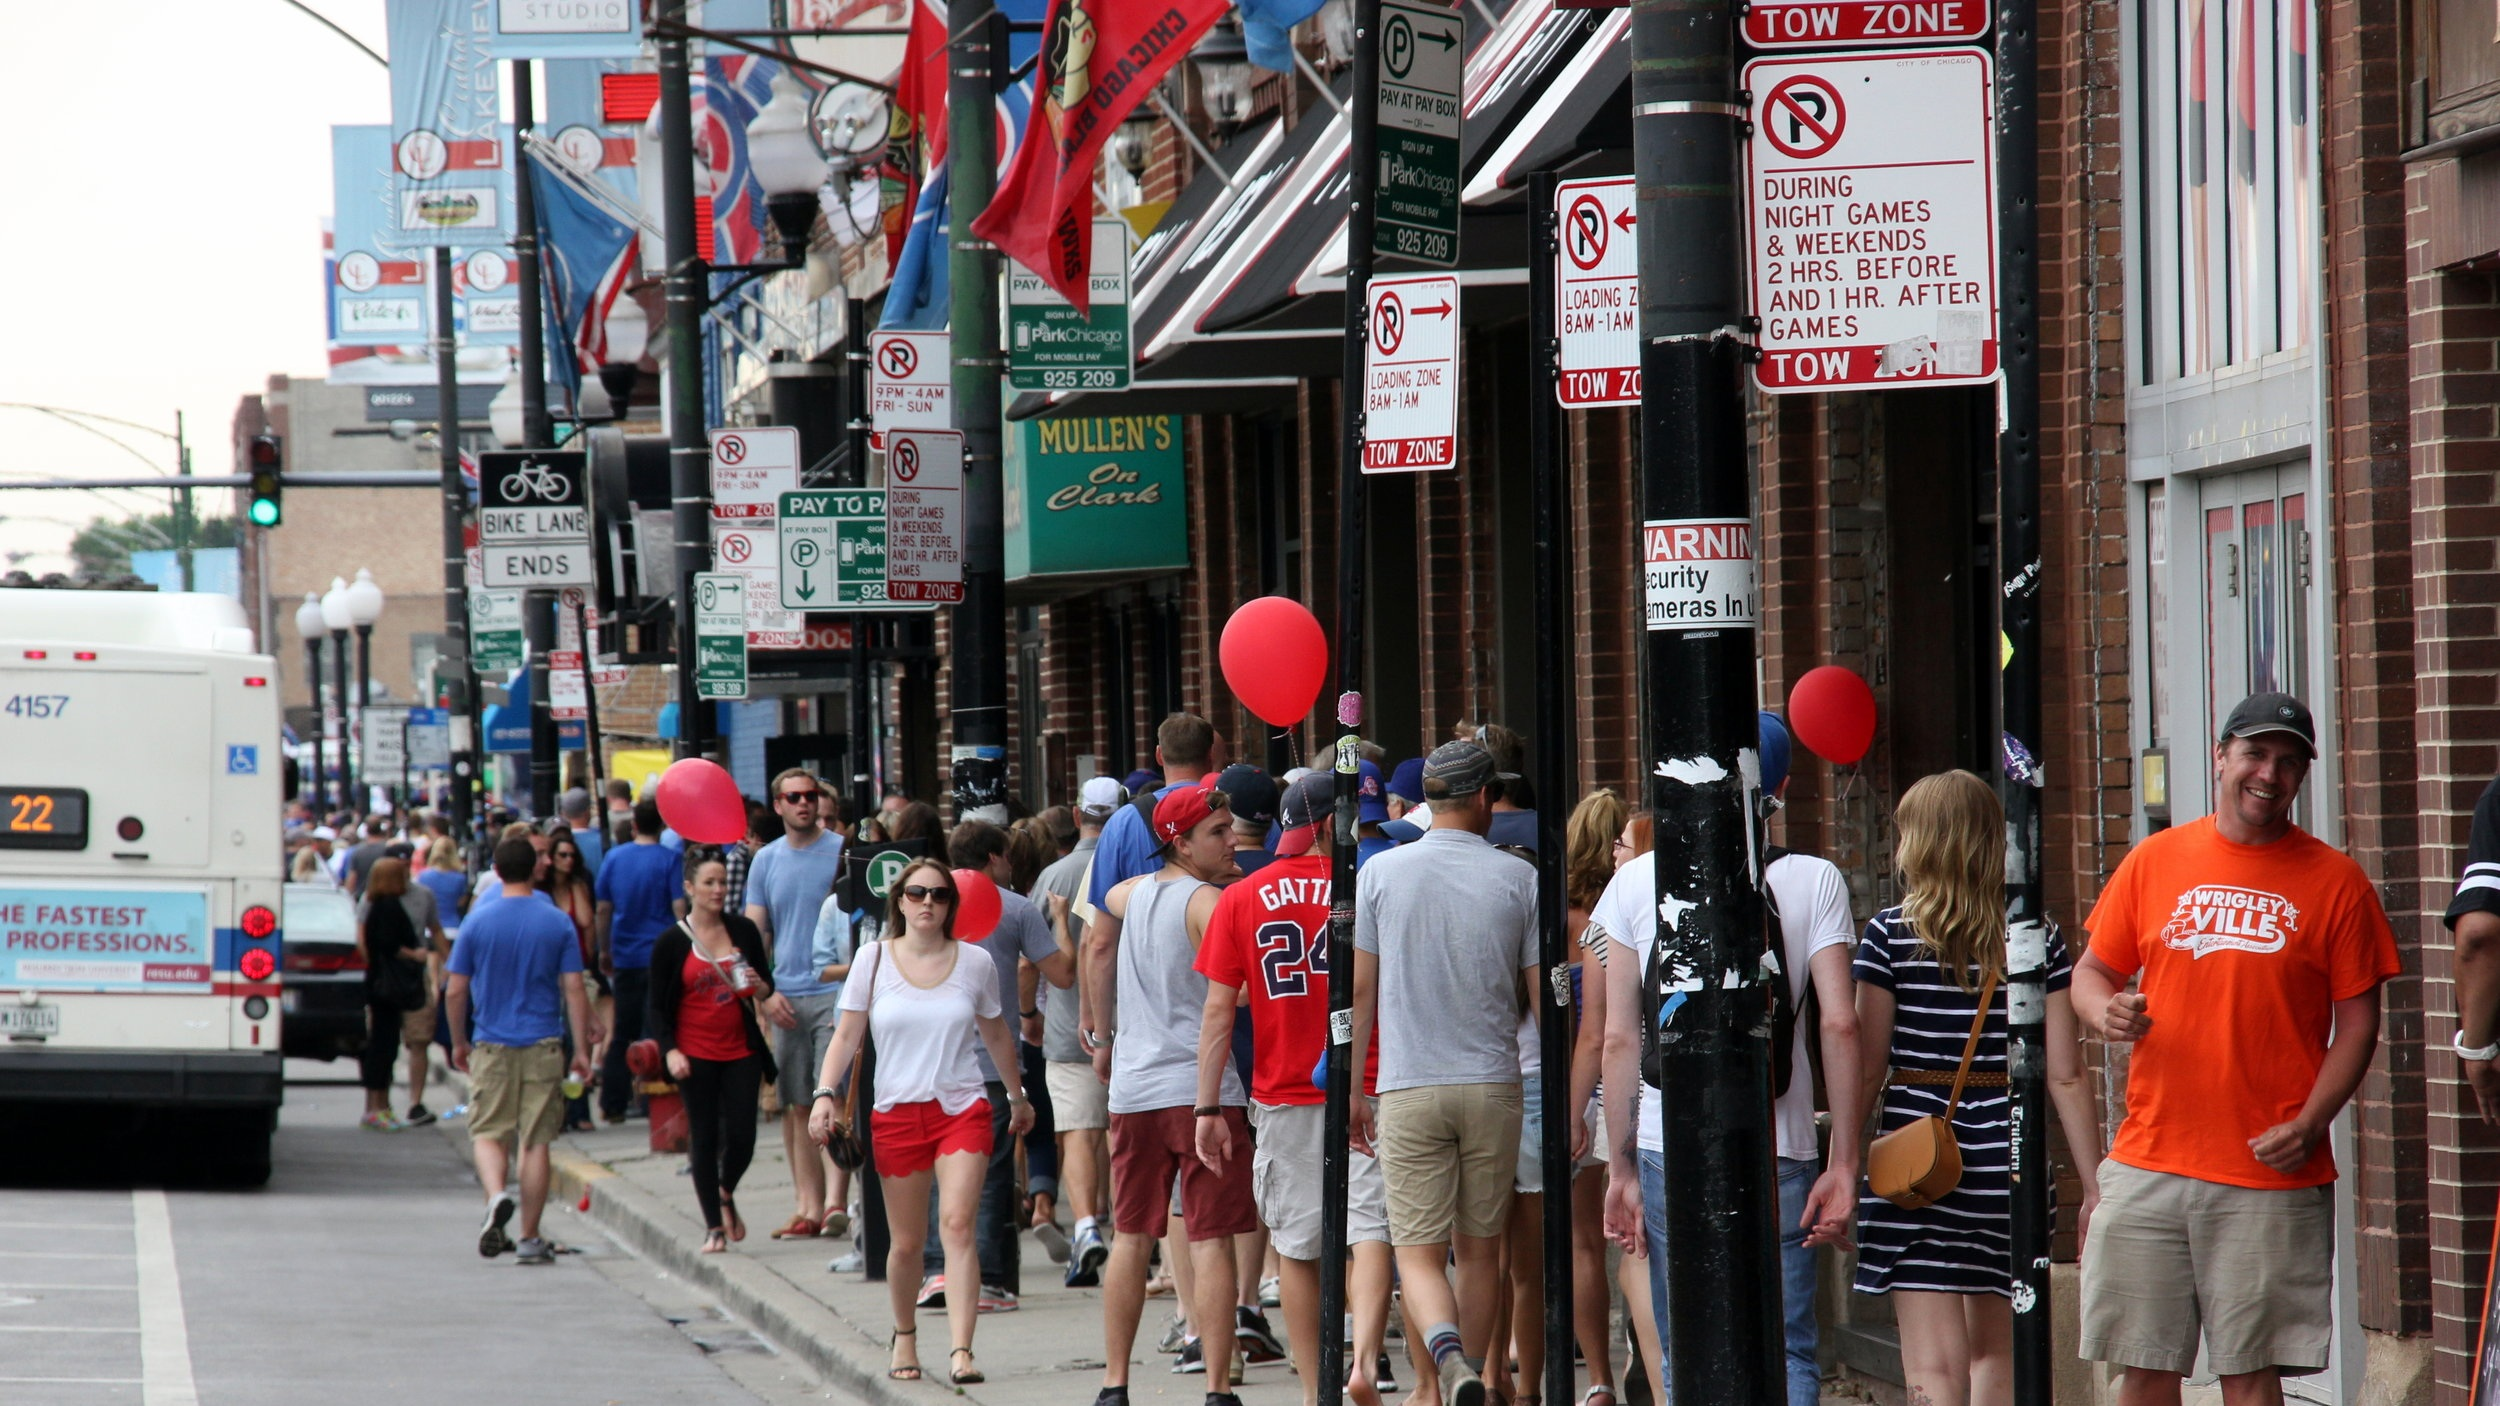 Known for its lively bar scene, there's always something going on in Lakeview - especially during Cubs games!